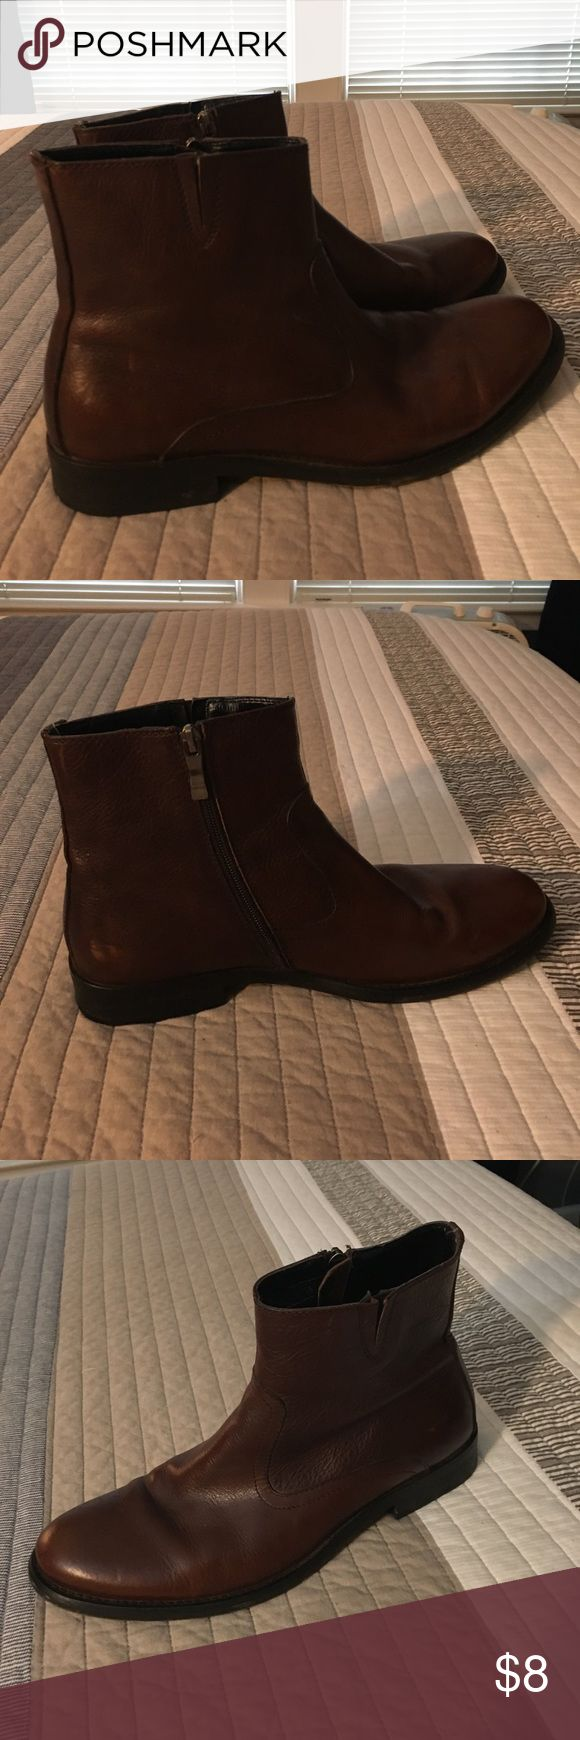 Kenneth Cole brown zip up boots Worn a few times. Only wear is on the bottom. Great shape. Kenneth Cole Reaction Shoes Chukka Boots